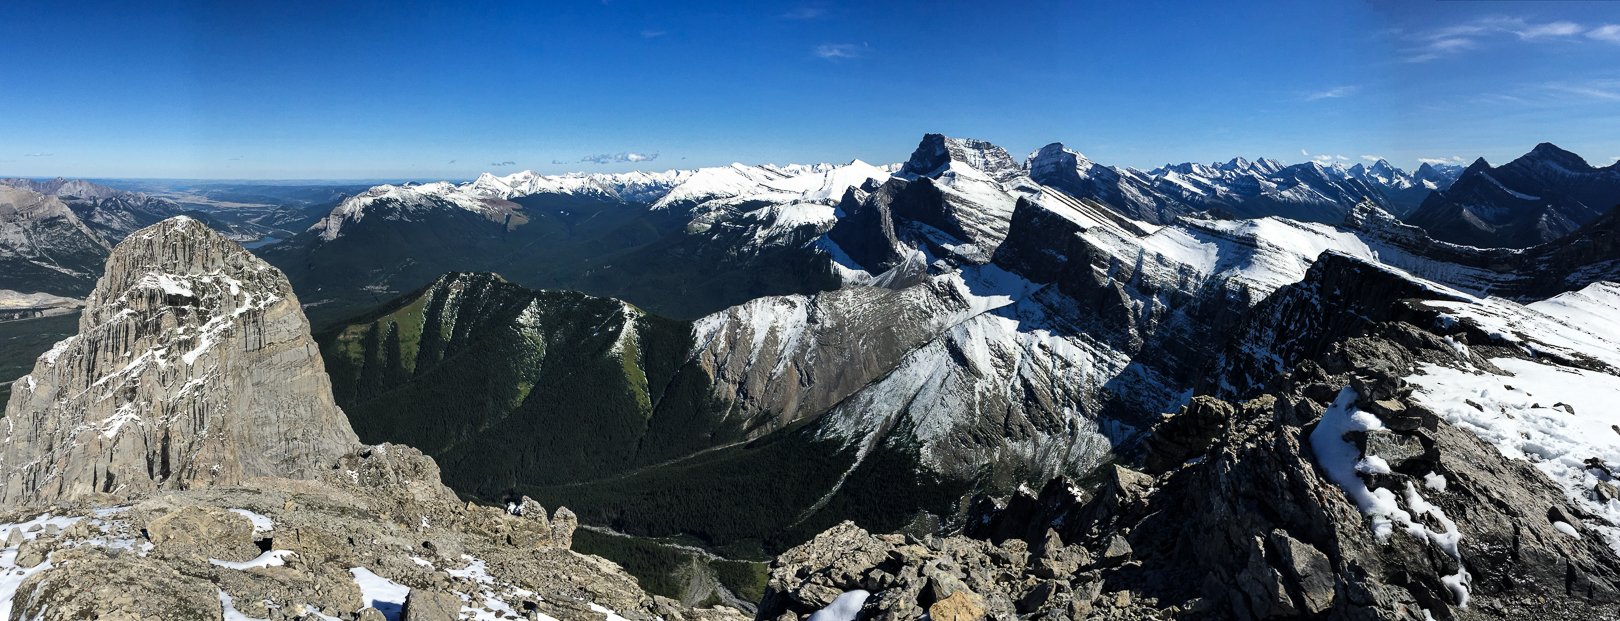 Panorama from the summit of Middle Sister